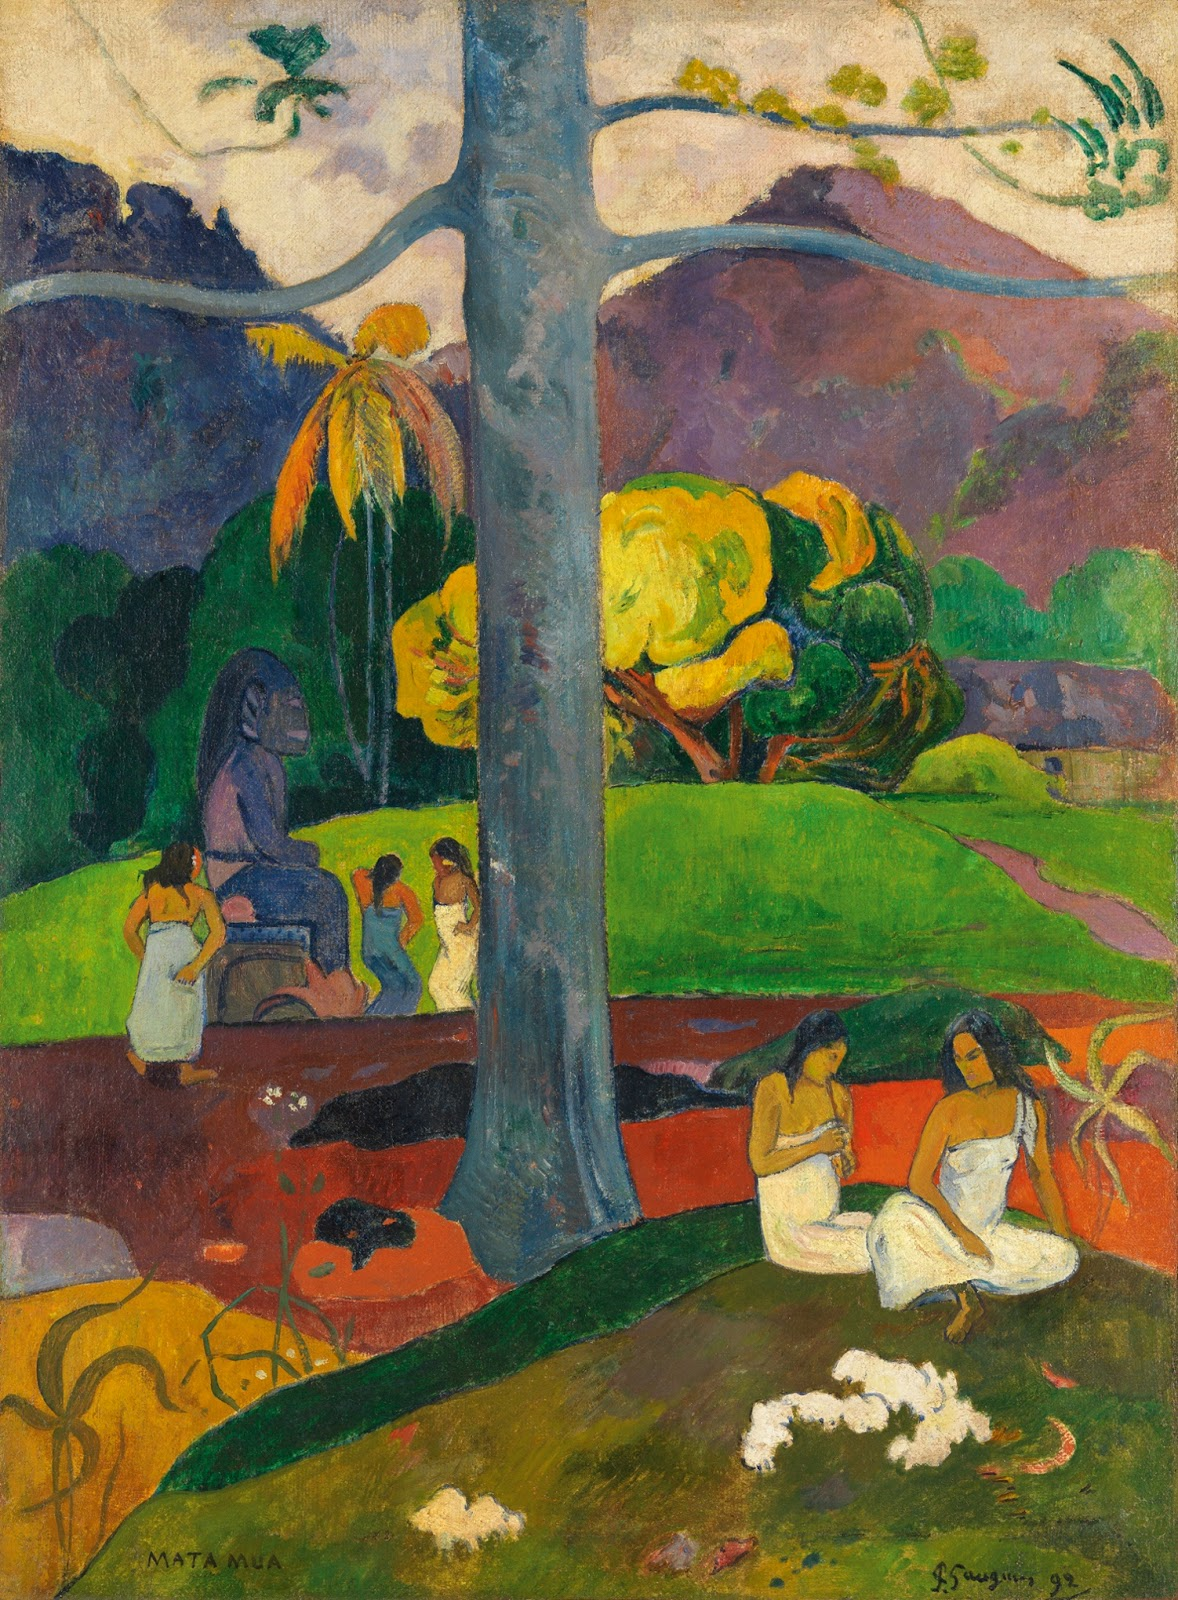 Paul Gauguin -Mata mua (In Olden Times), 1892.